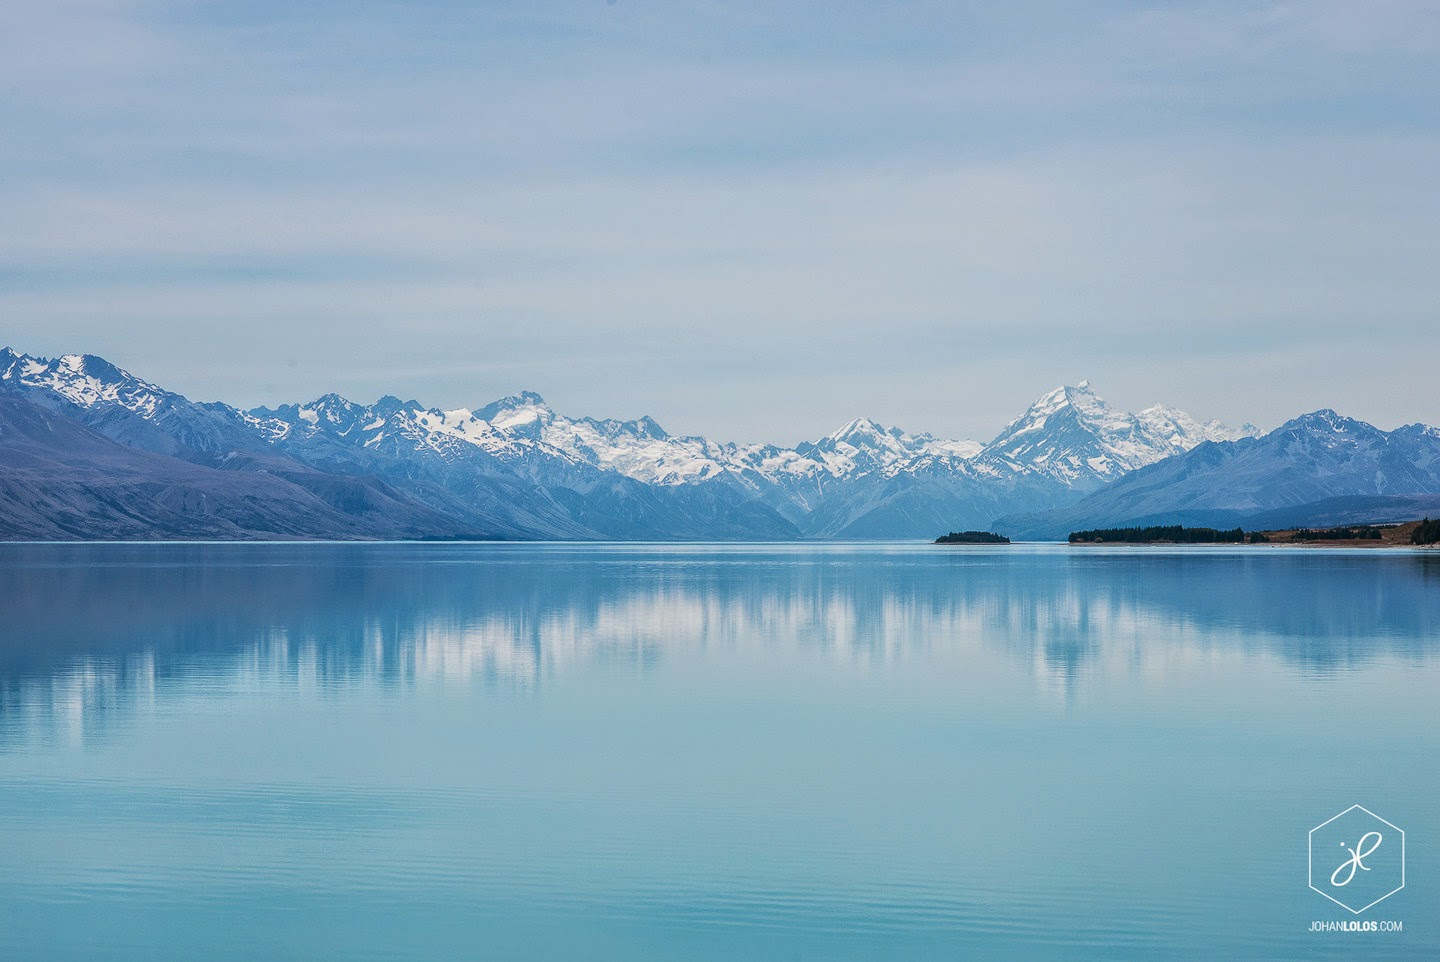 Lake Pukaki - He Traveled Around New Zealand In A Camper Van… This Is What He Saw.